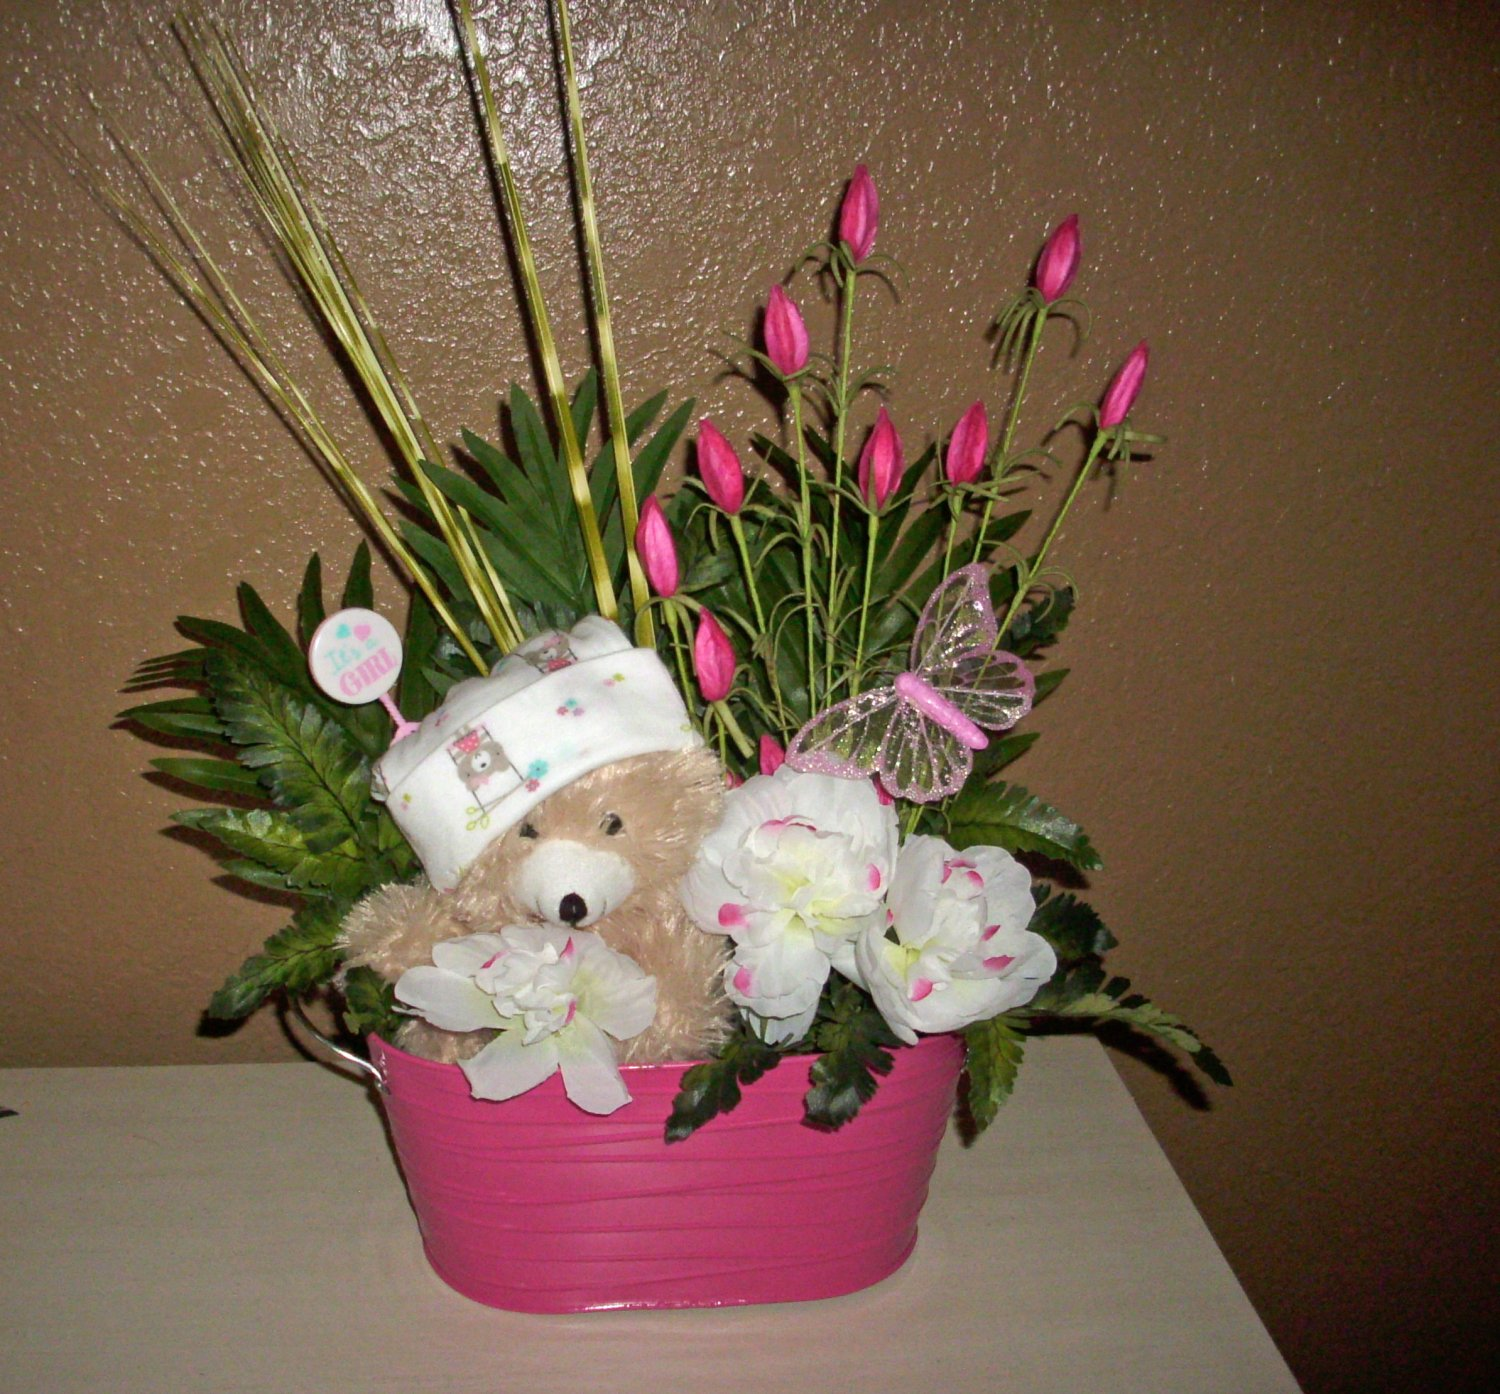 Baby Shower Silk Floral Arrangement, in pink, white and lots of greens, toys